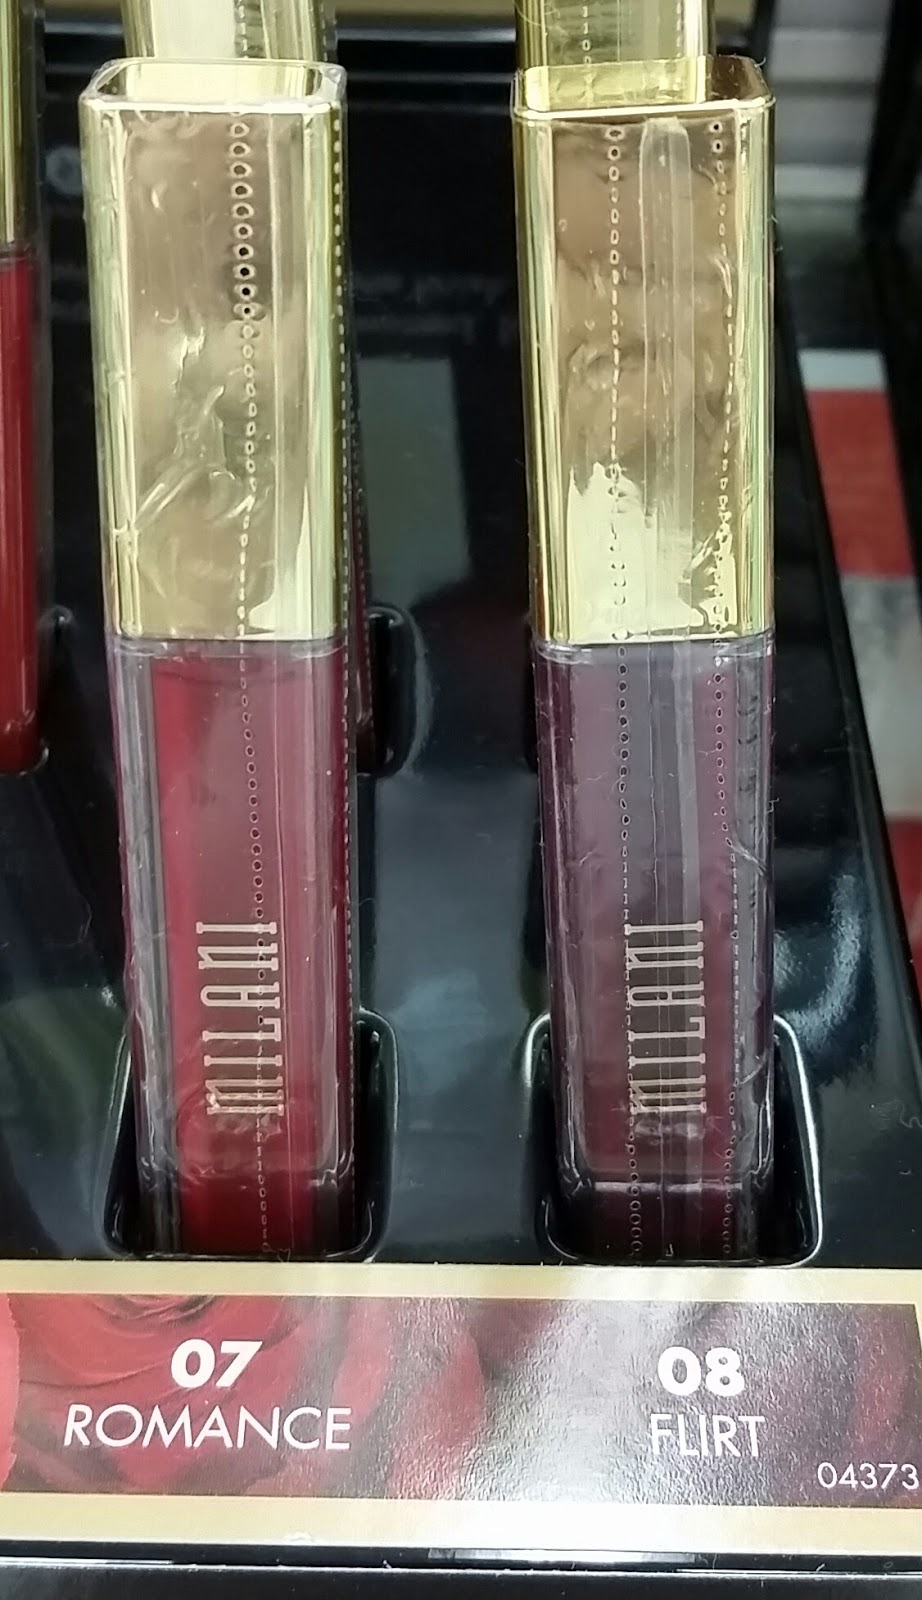 milani amore matte lip creme flirt I went to five walgreens i don't know if that makes me dedicated or insane either way, i got my hands on 3 of the milani matte lip creams the walgreens that i finally found them at had a small display and they had four total left in the entire display.